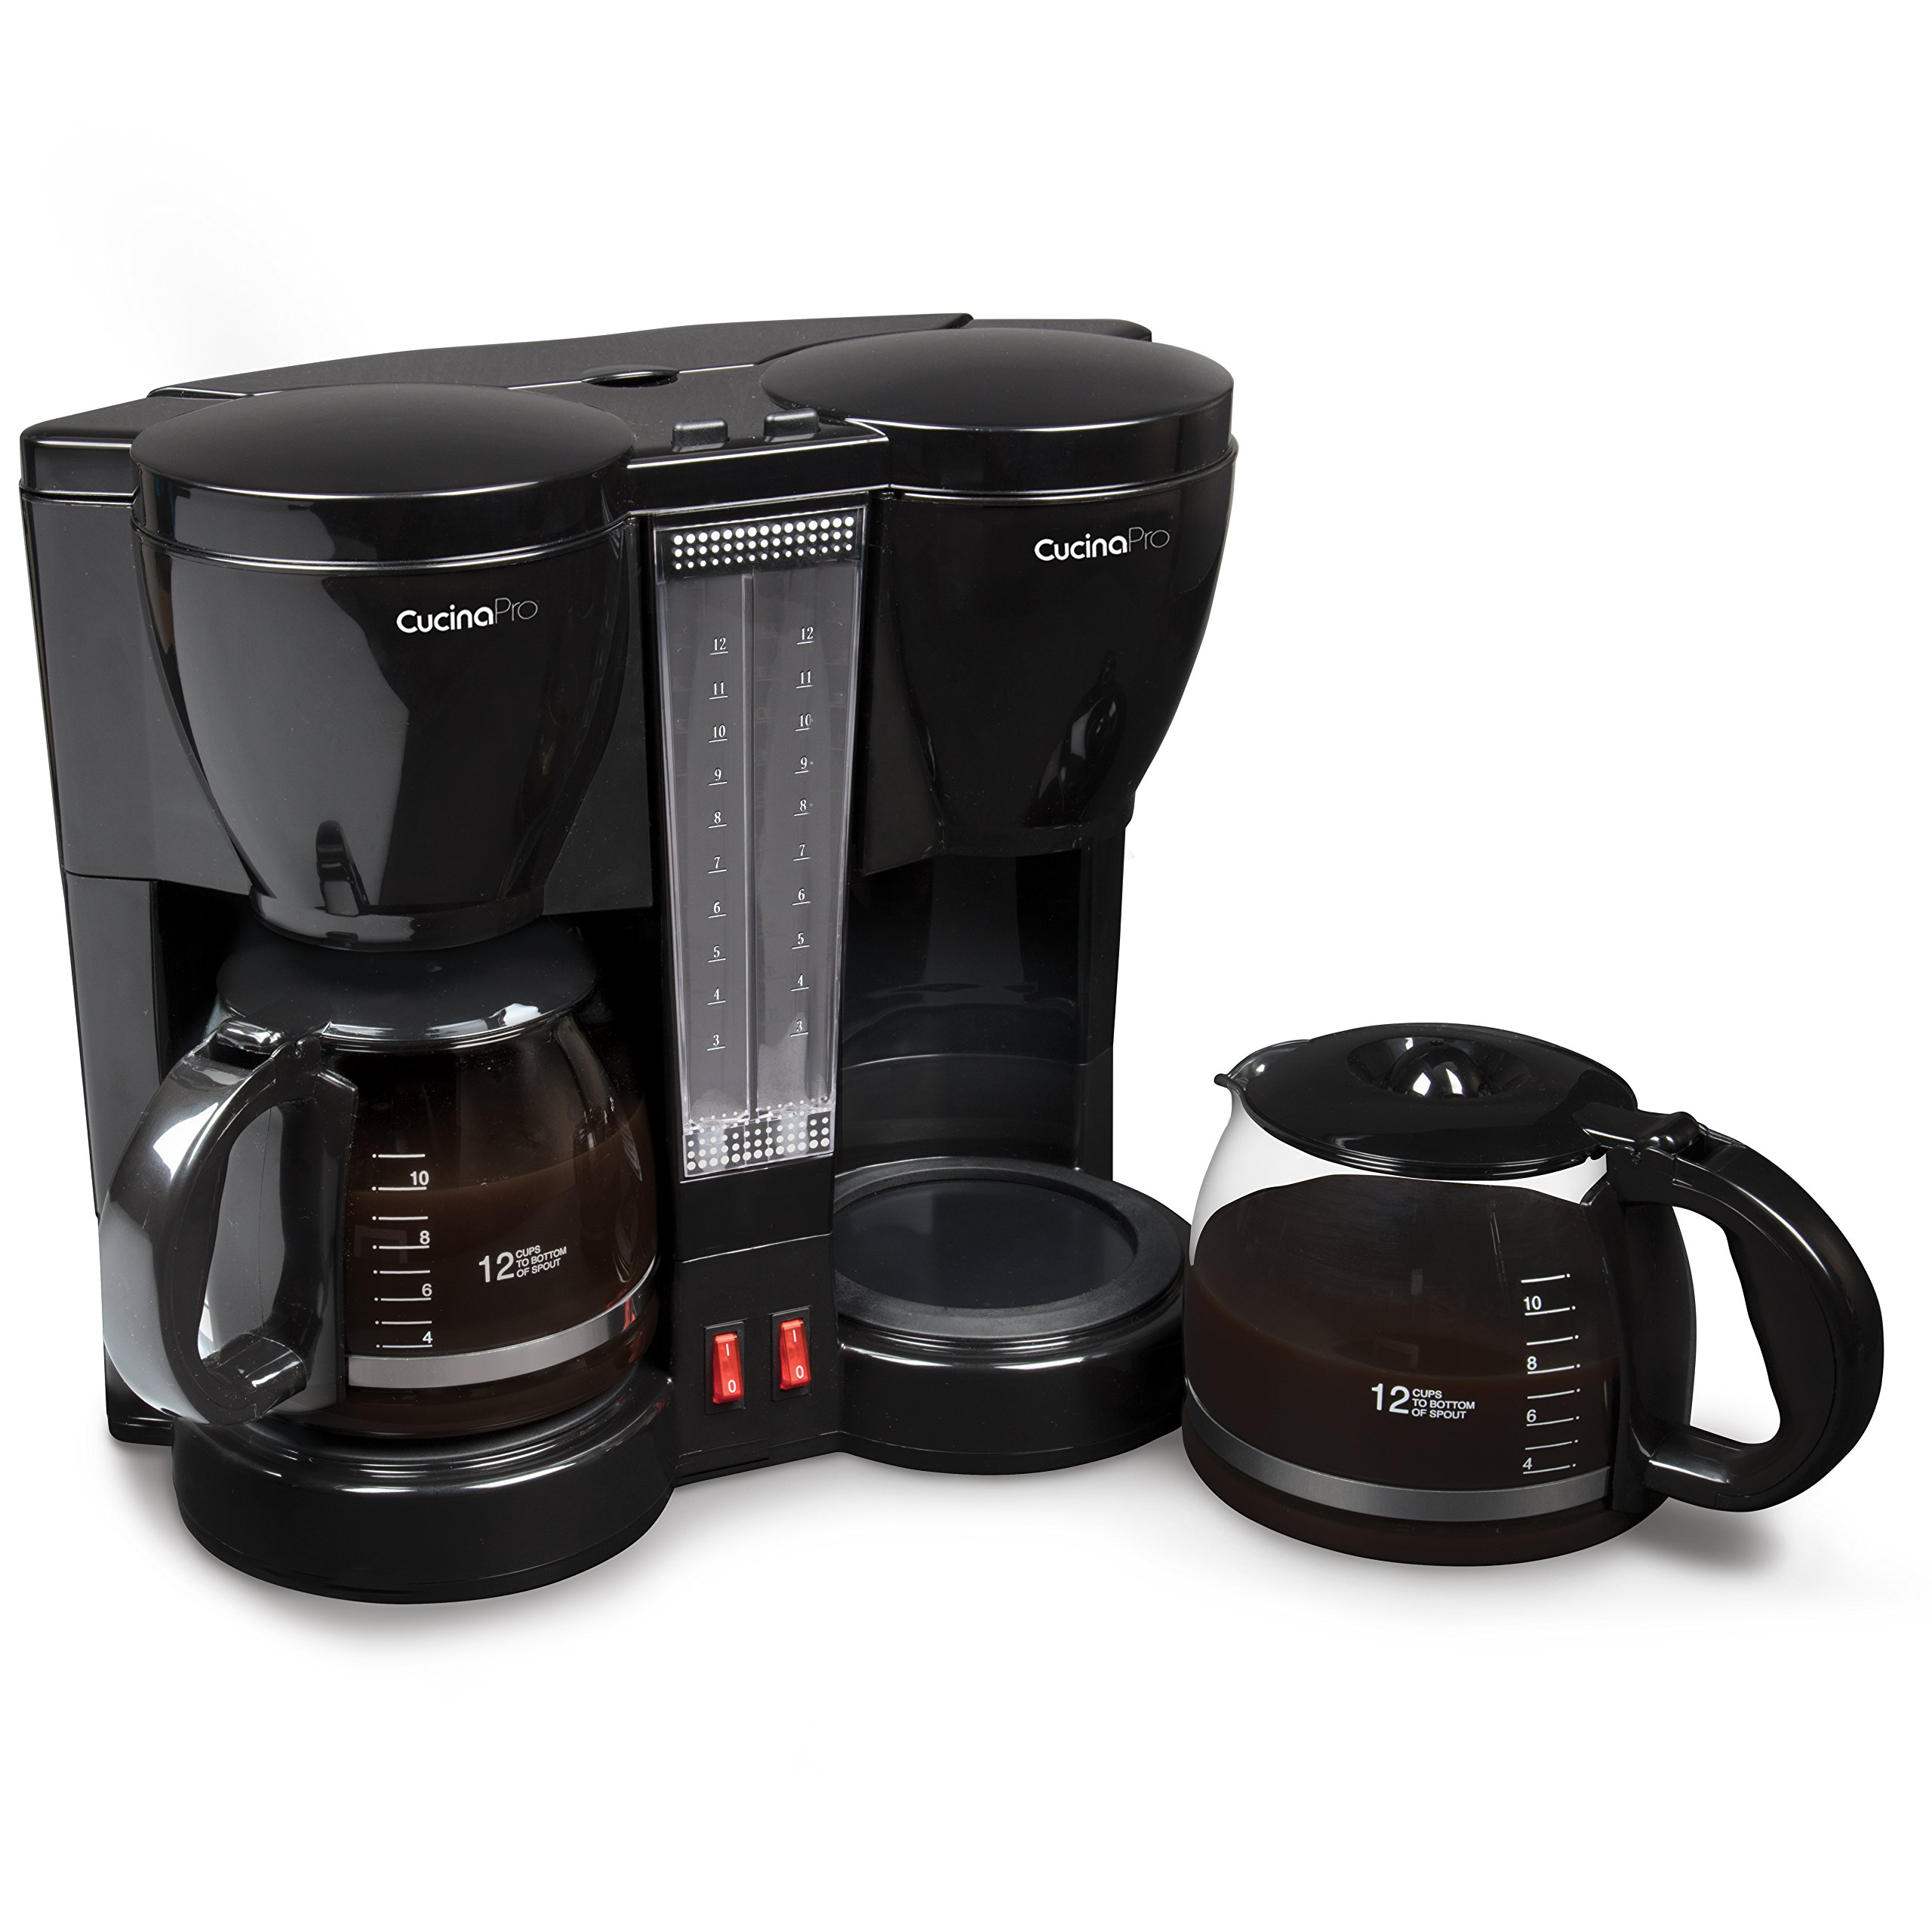 CucinaPro Double Coffee Brewer Station - Dual Coffee Maker Brews two 12-cup Pots, each with Individual Heating Elements by CucinaPro